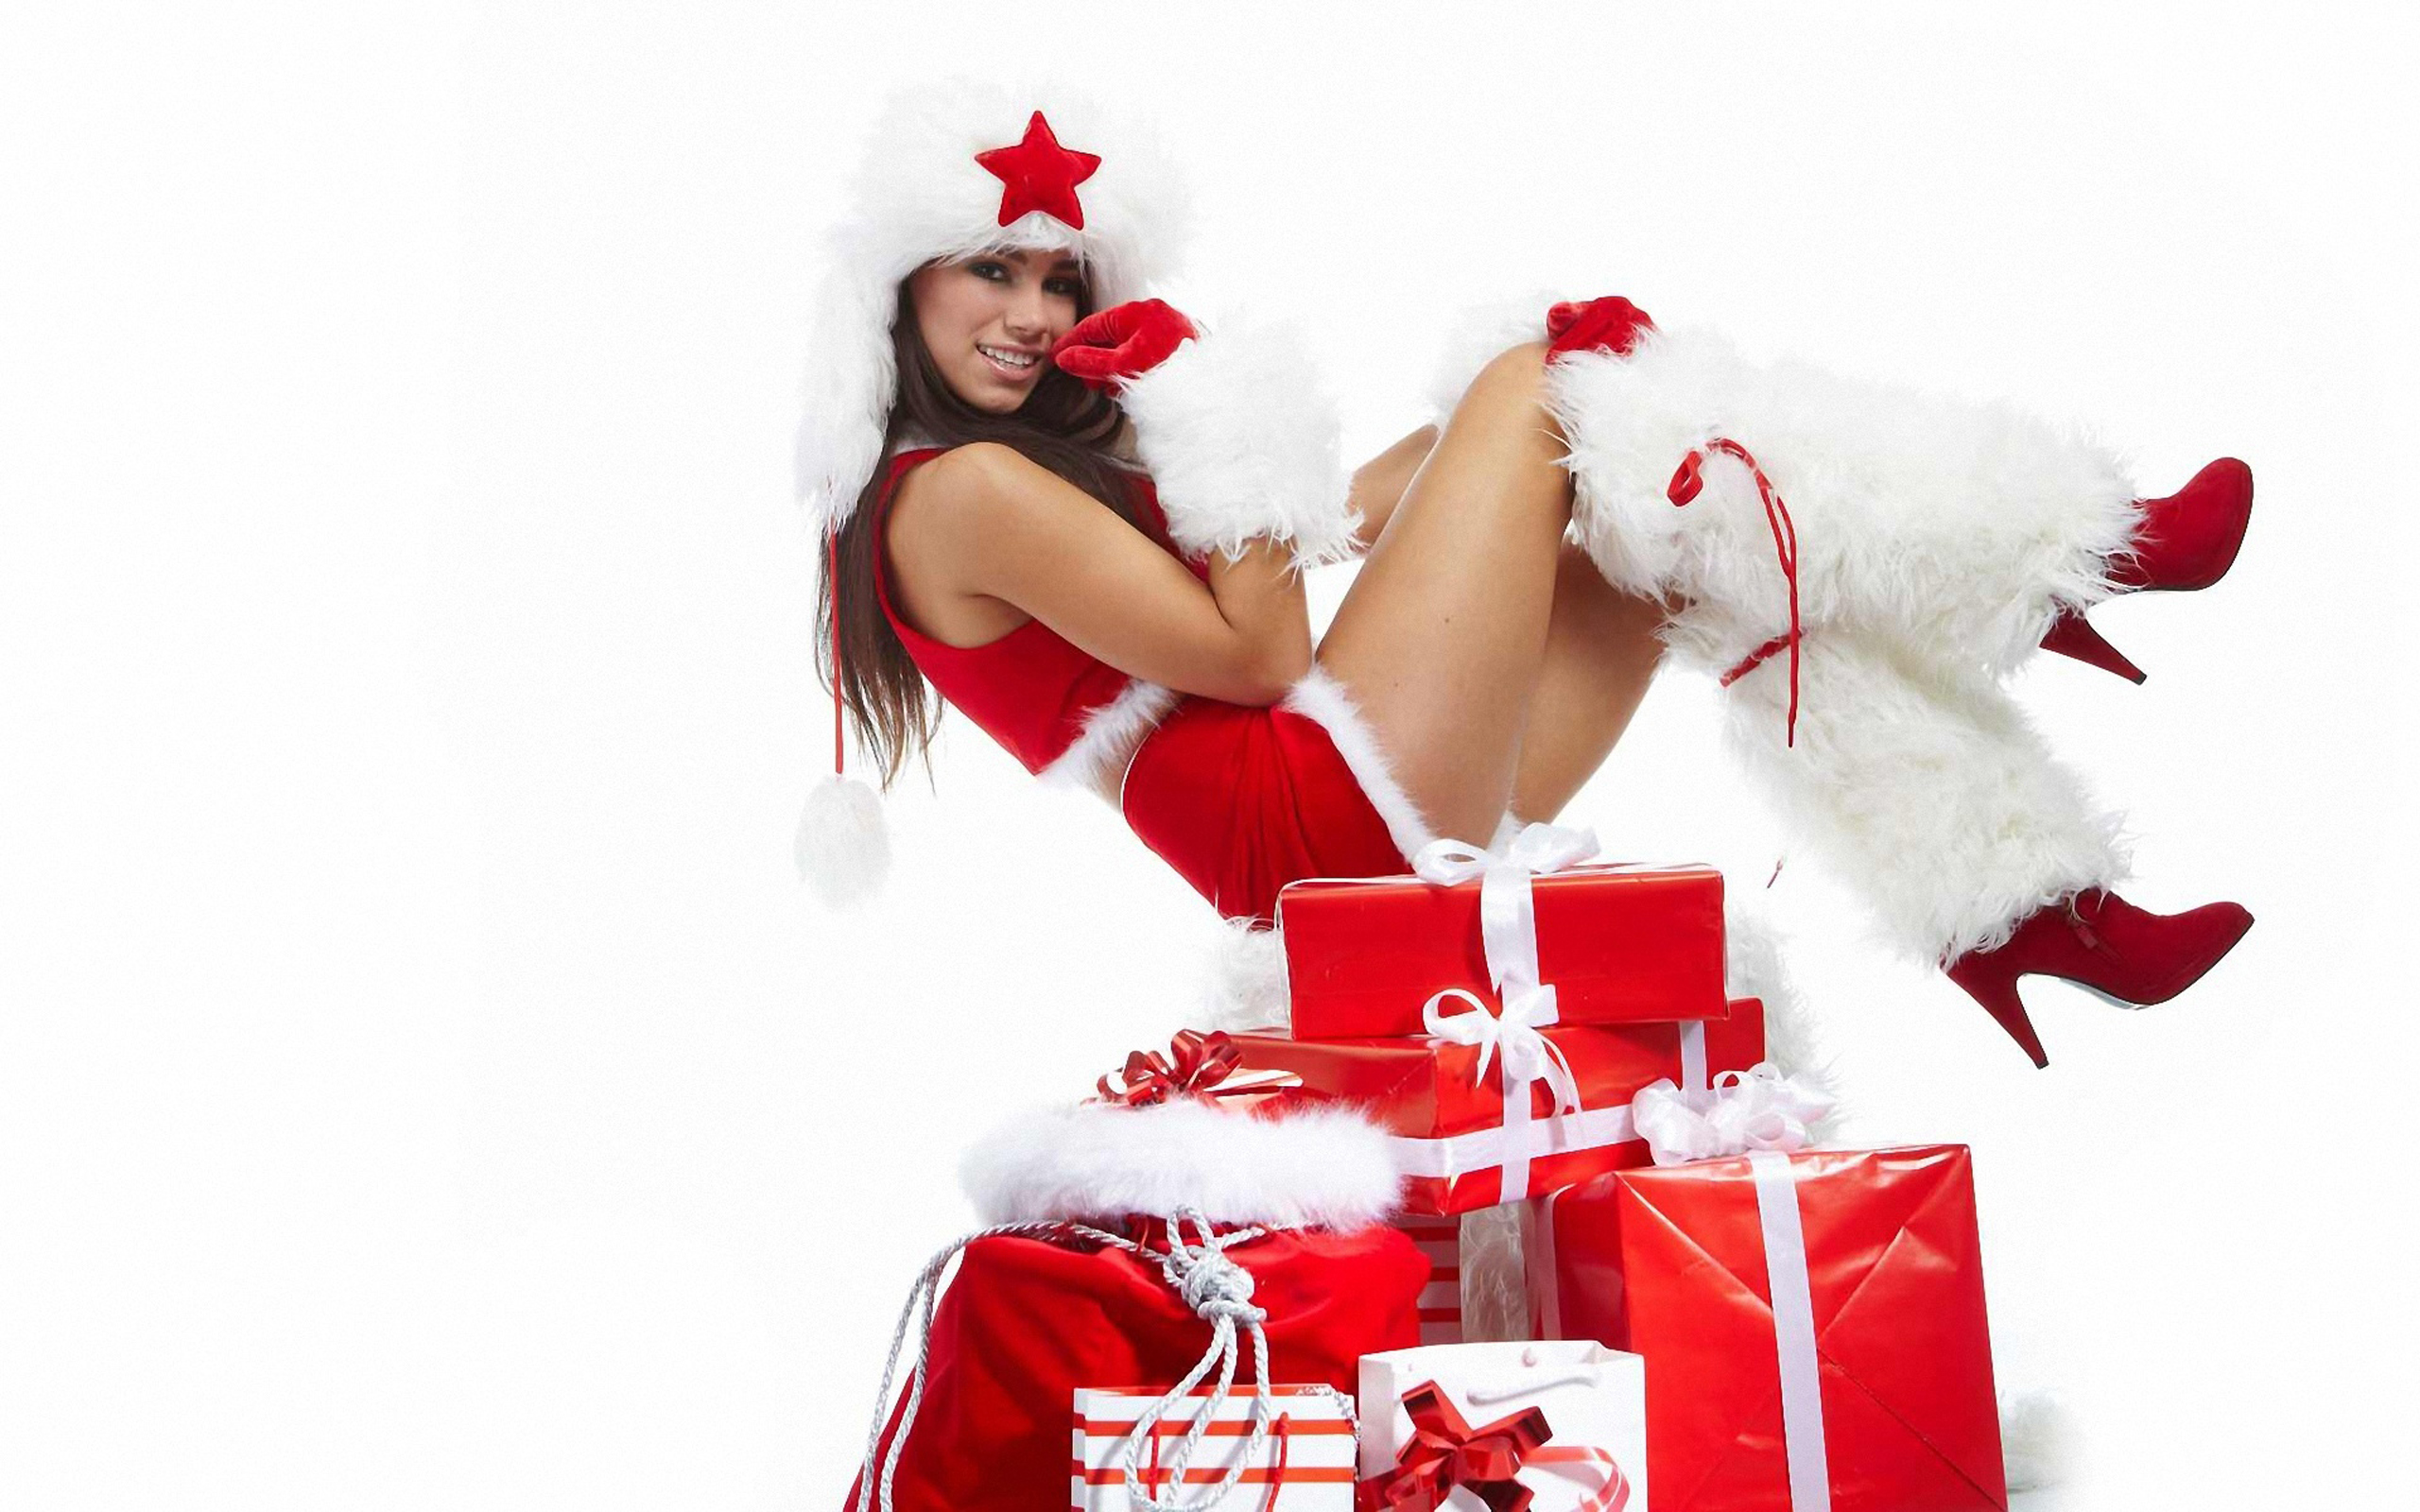 sexy-christmas-wallpapers-2.jpg